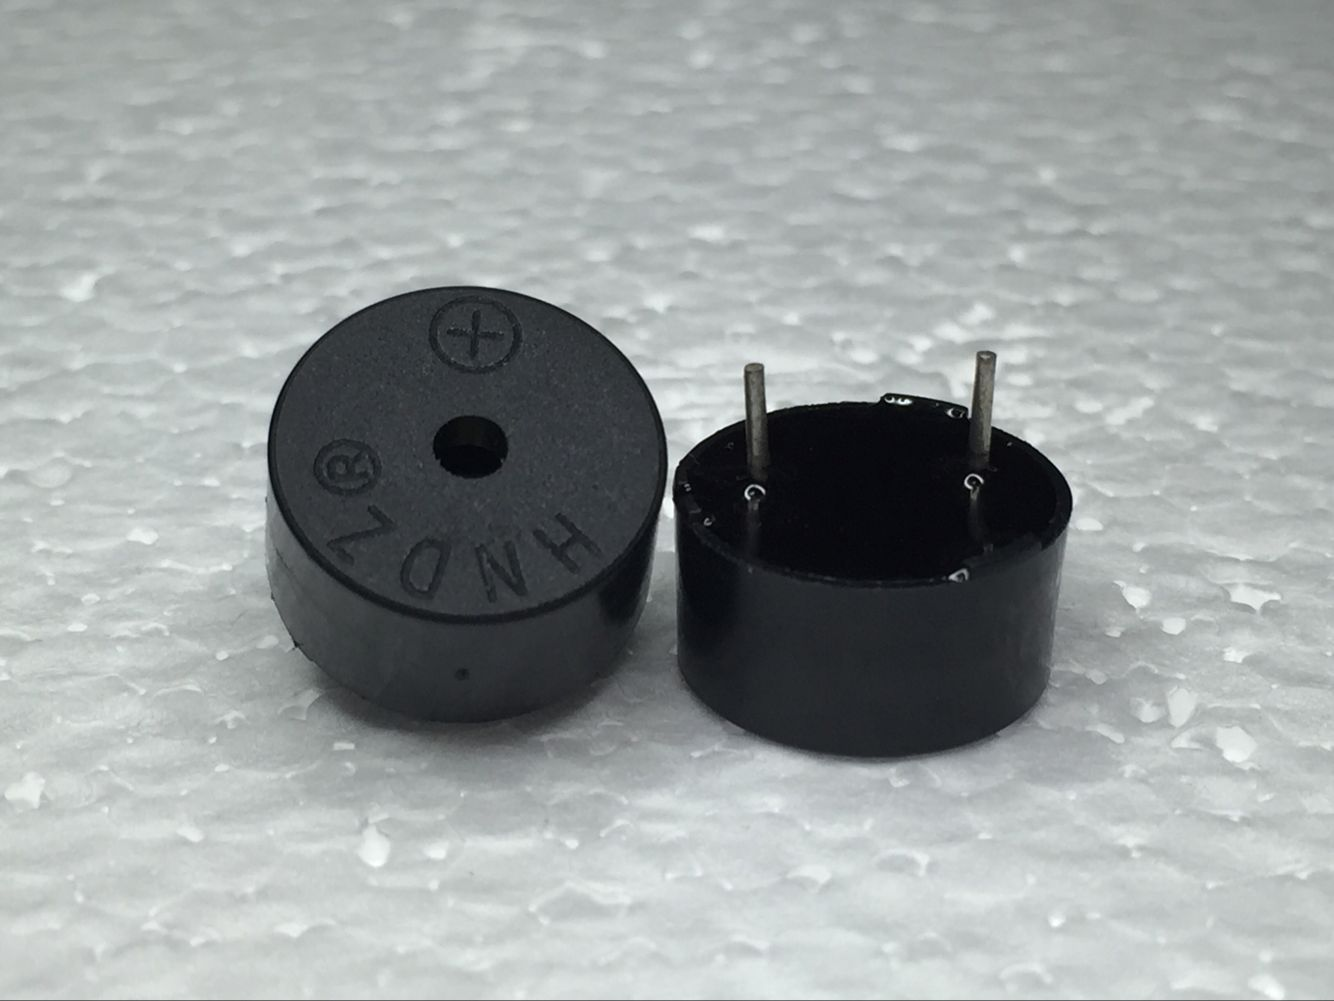 Huaneng Electron Piezoelectric Active Buzzer HND-1407B Voltage 5V 6V Continuous Sound Low Current 8MA